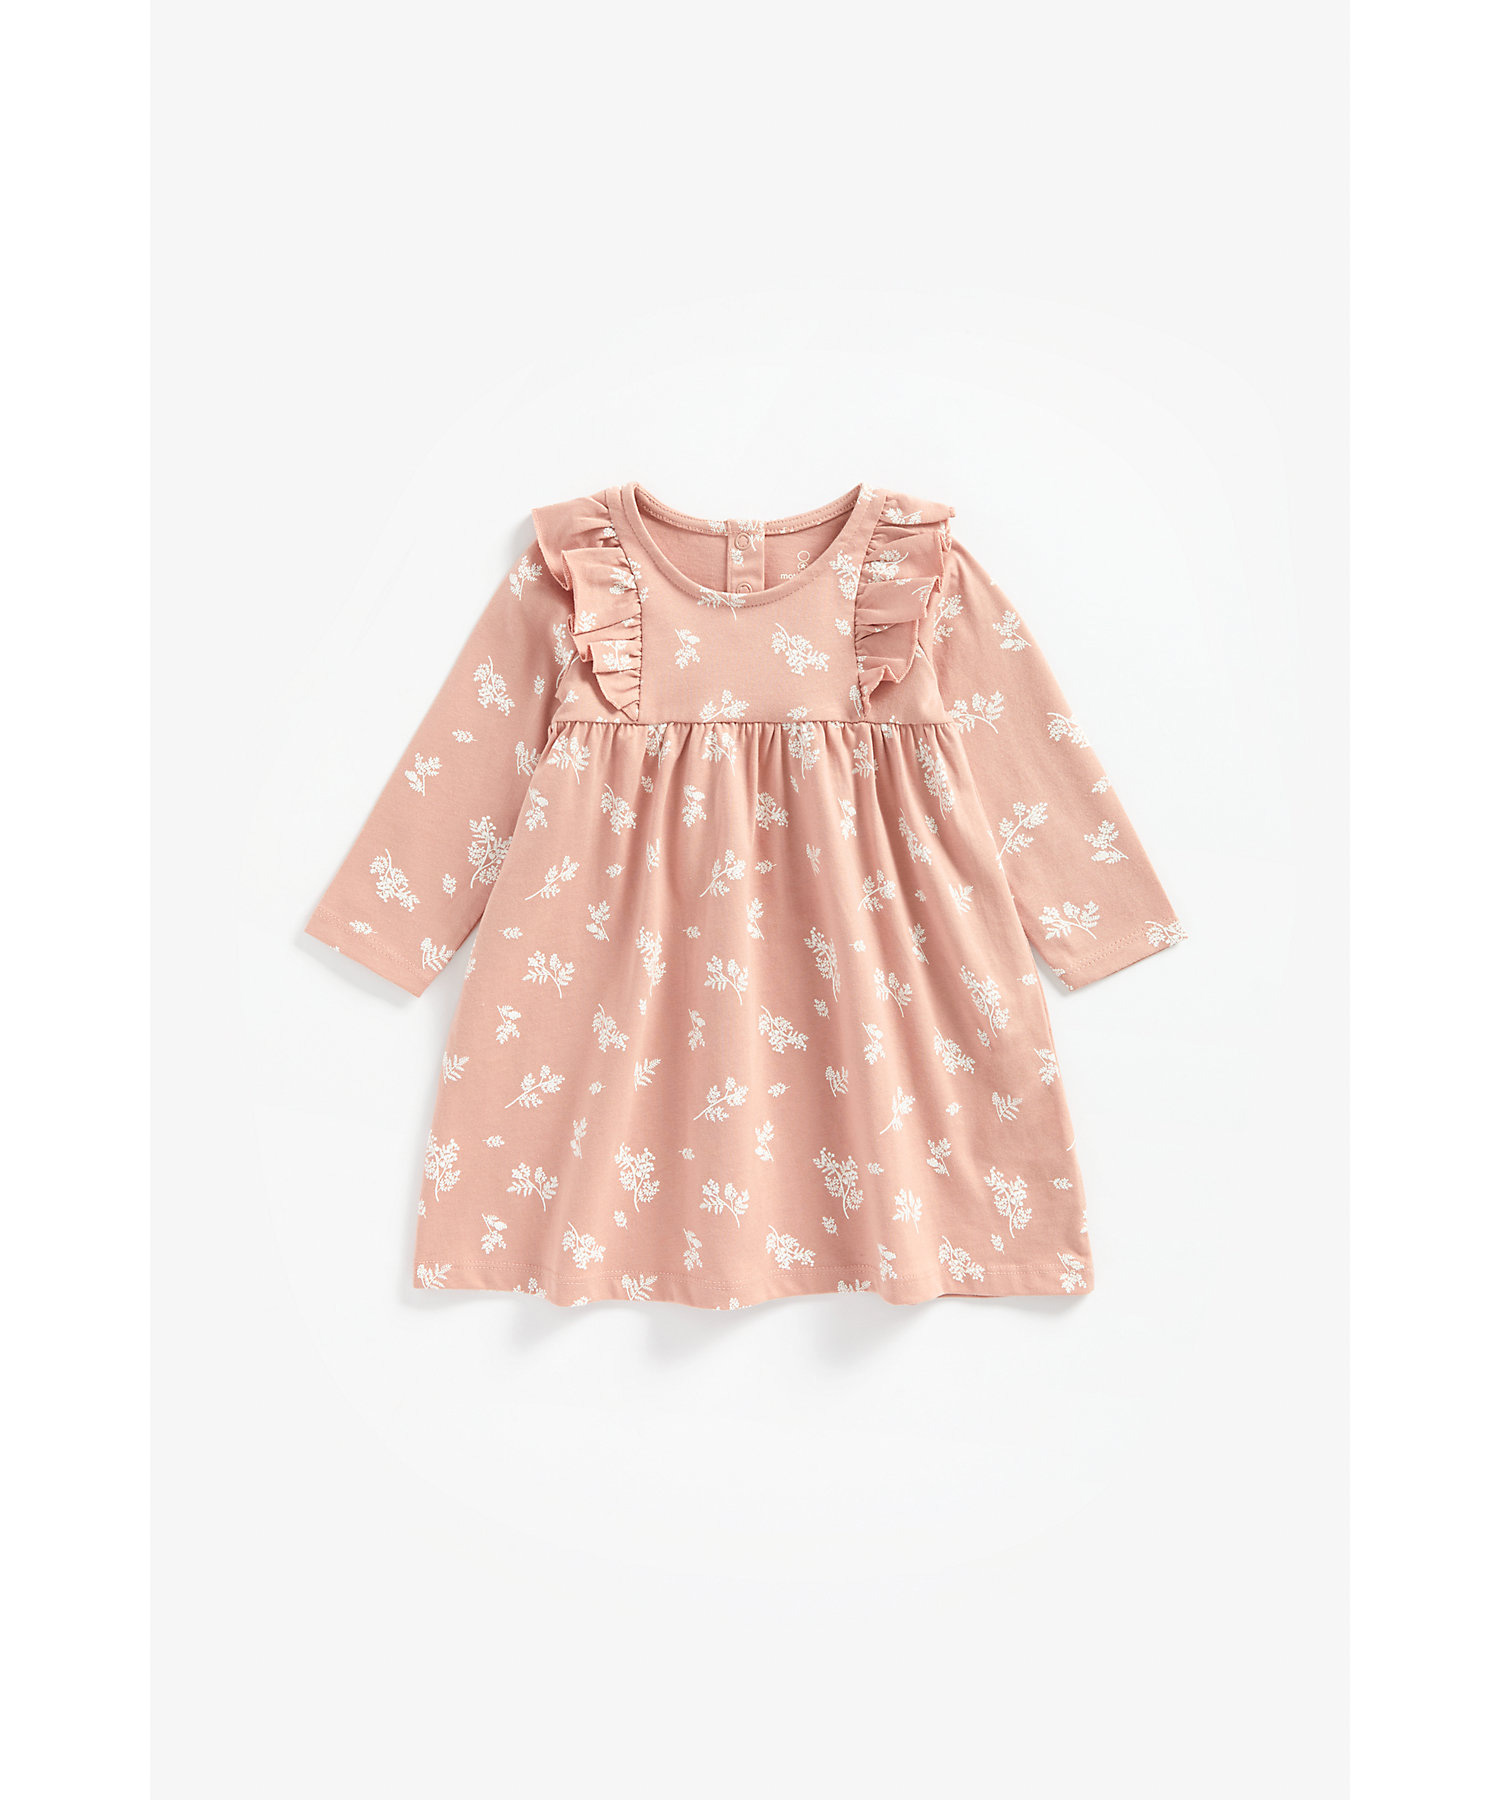 Mothercare | Girls Full Sleeves Floral Print Dress Frill Details - Pink